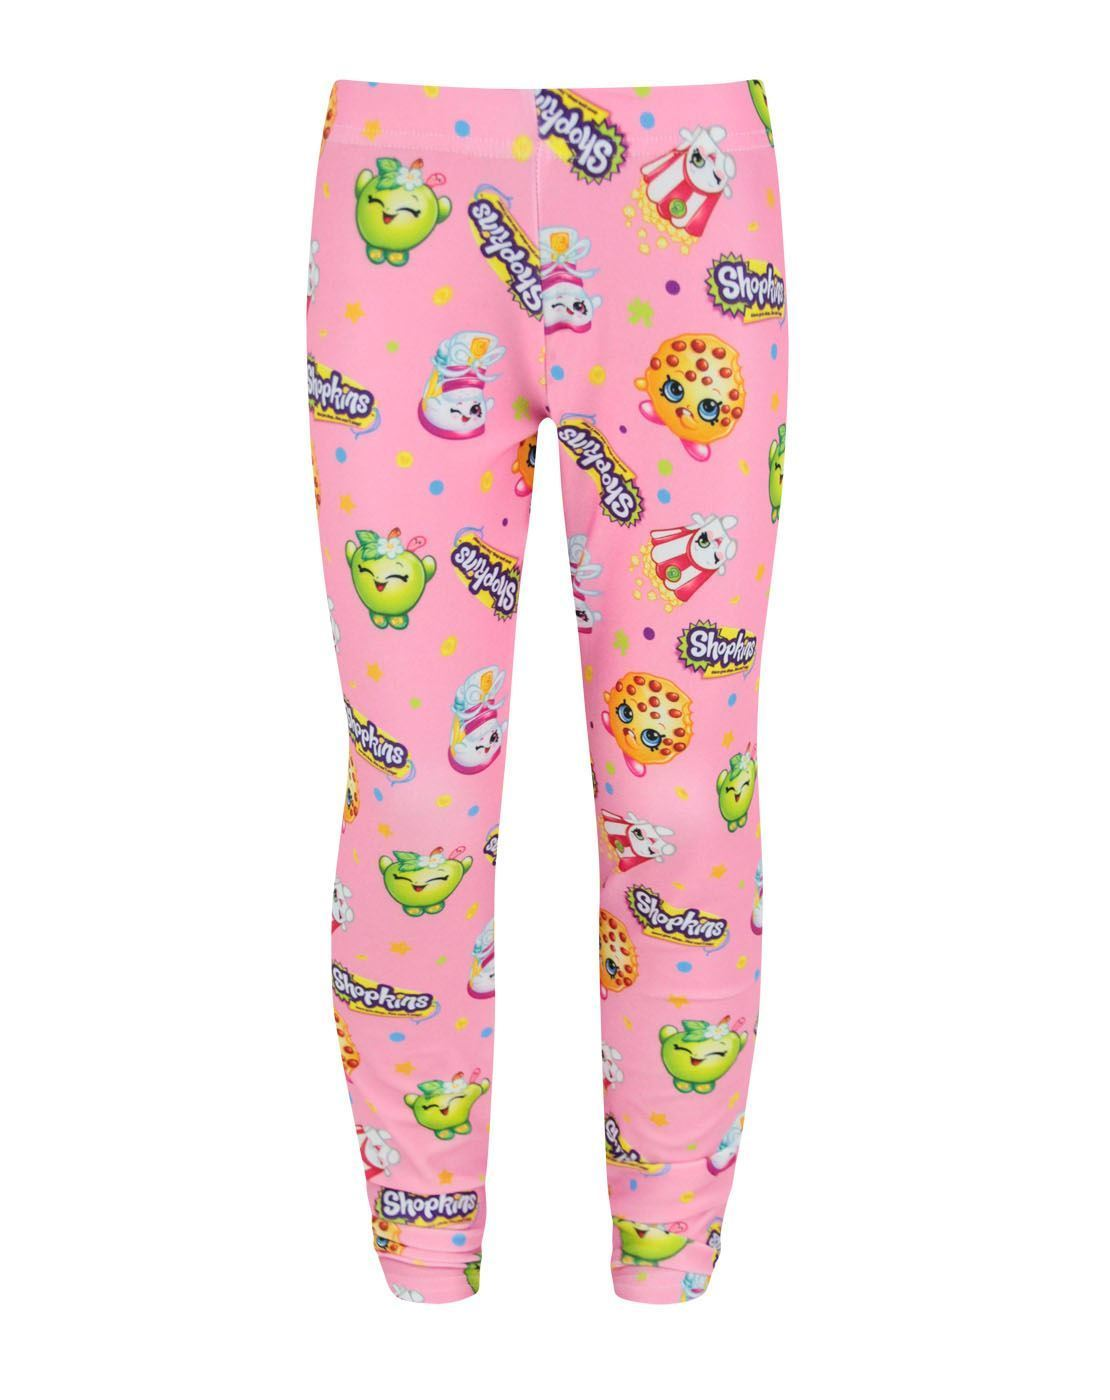 Shopkins Icons Girl's Leggings